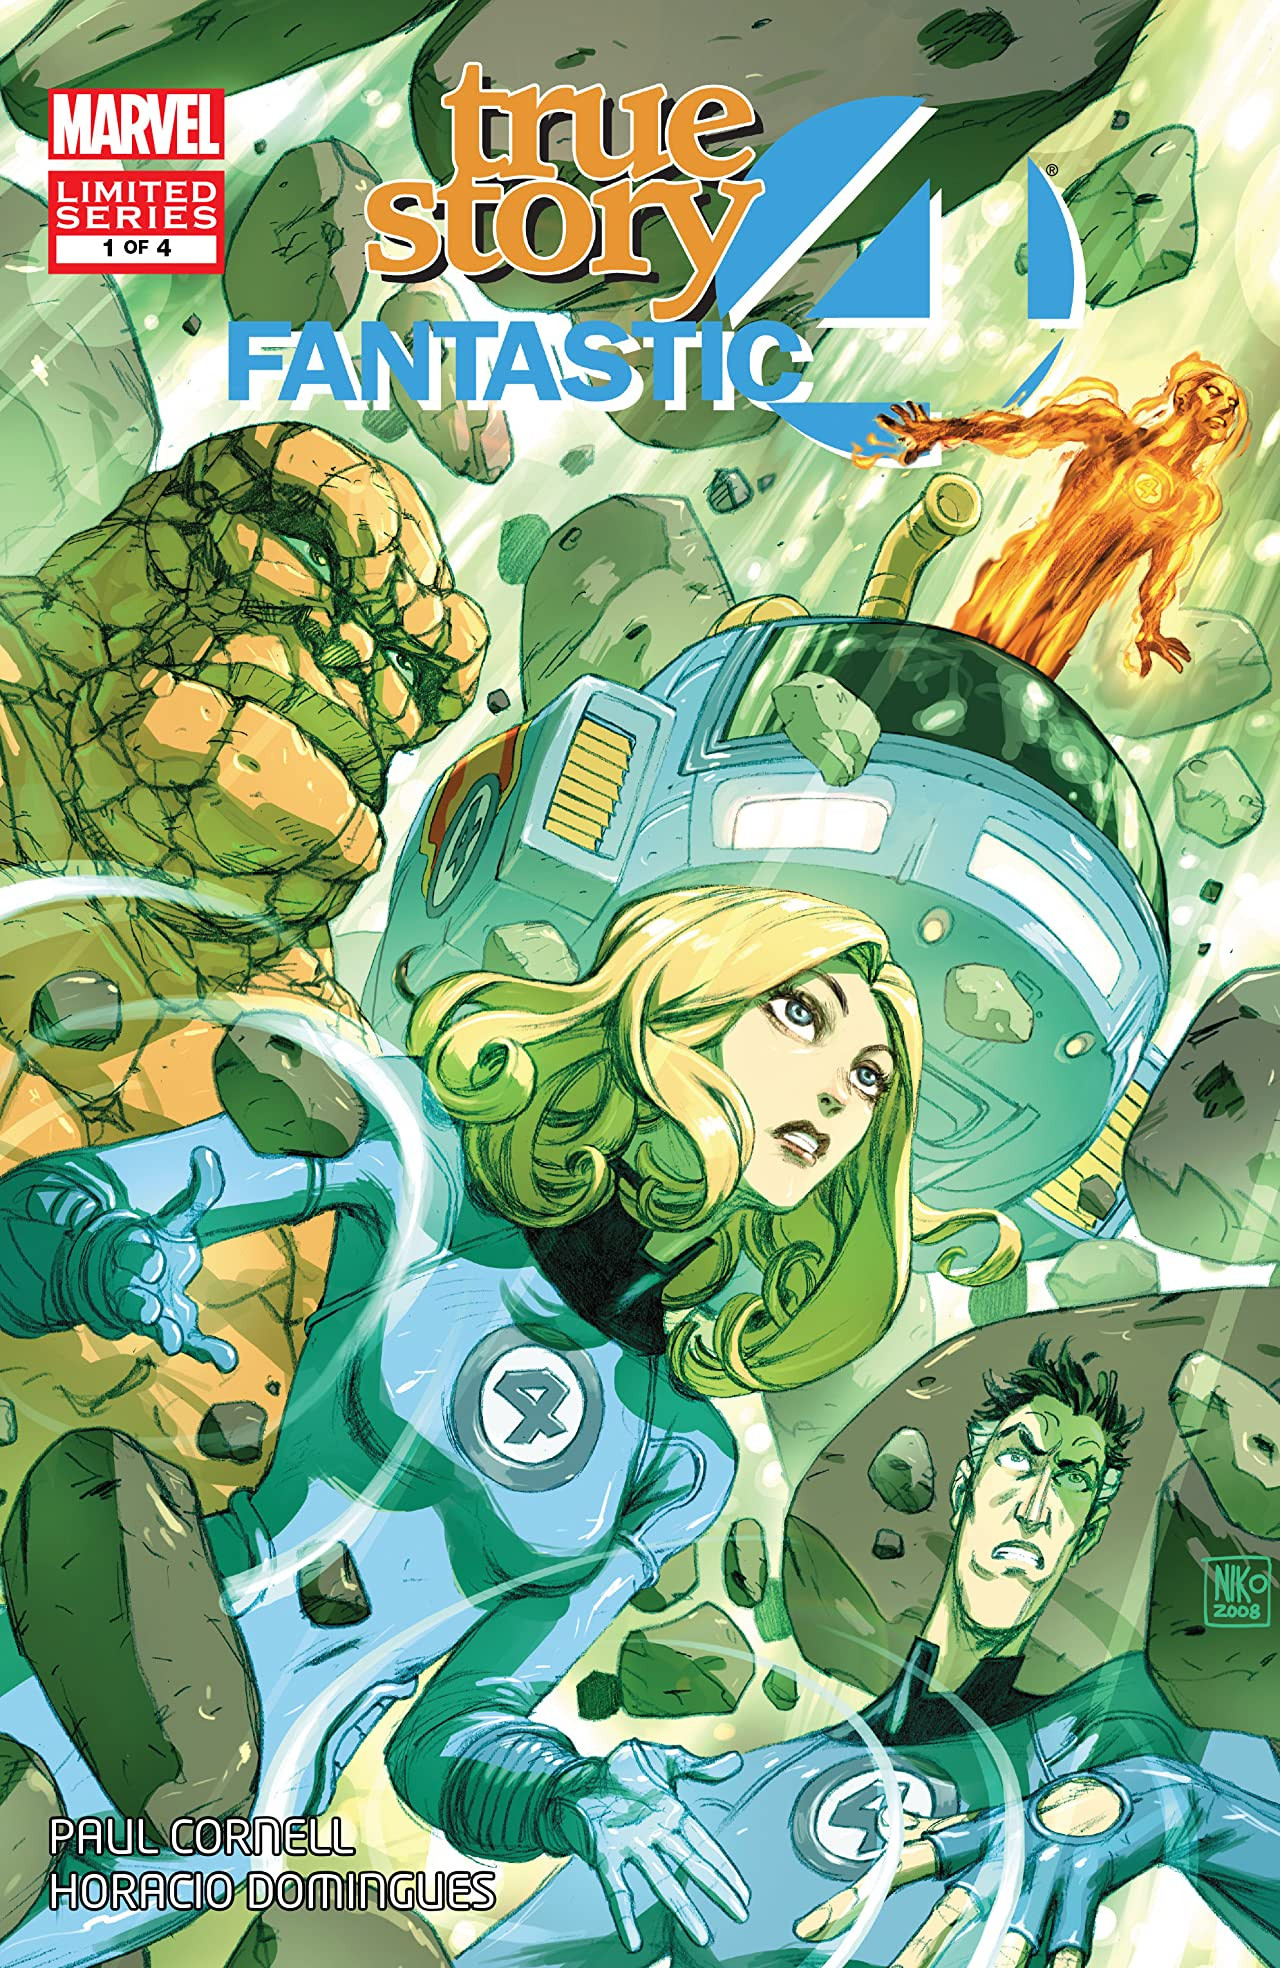 Fantastic Four: True Story Vol 1 1